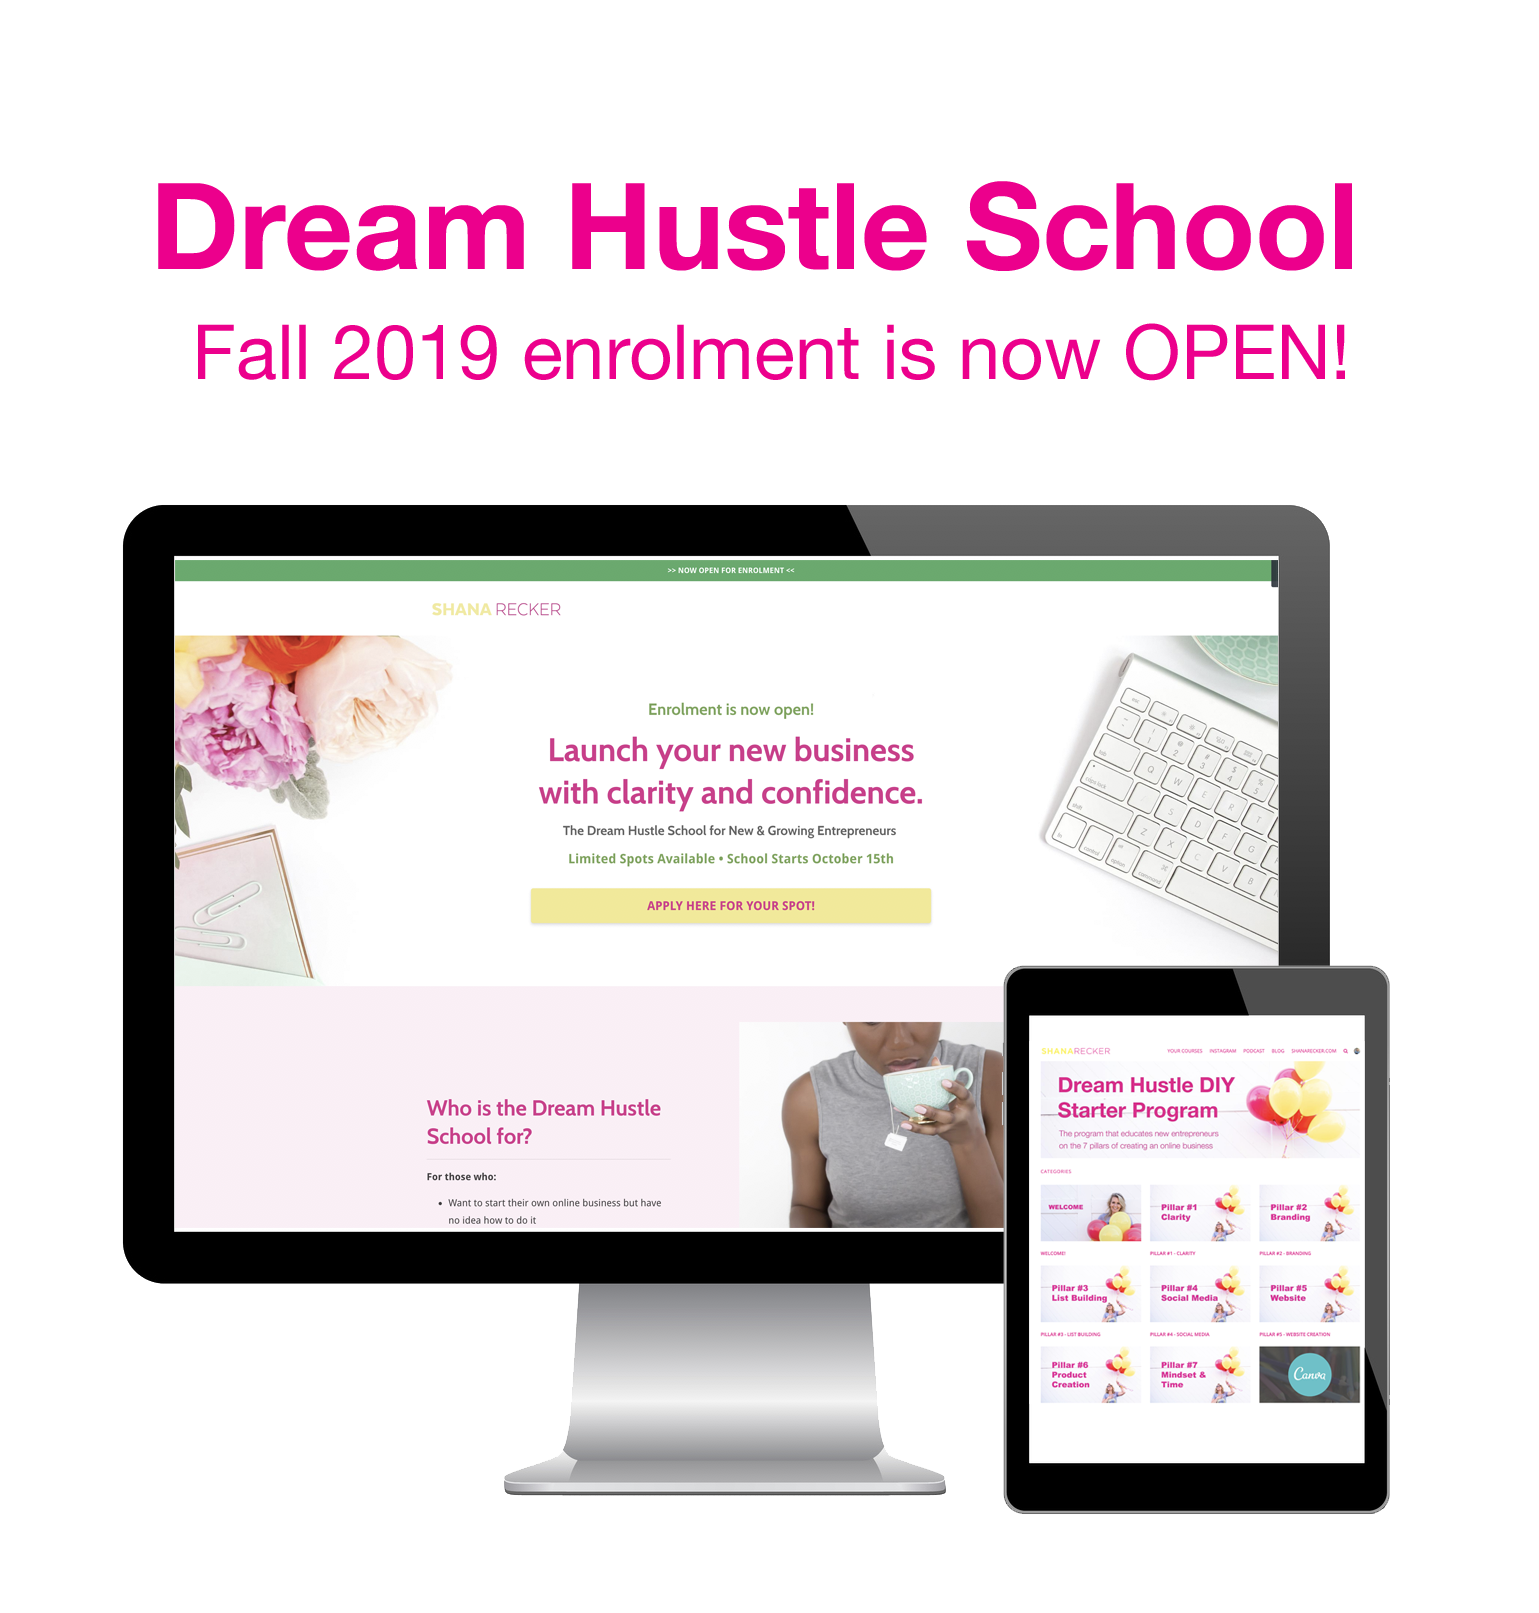 Apply for your spot in the Dream Hustle School - My Group Coaching Program that personally supports you in building the digital foundation and strategy for your new online business.We get started October 15th, 2019!LEARN MORE HERE